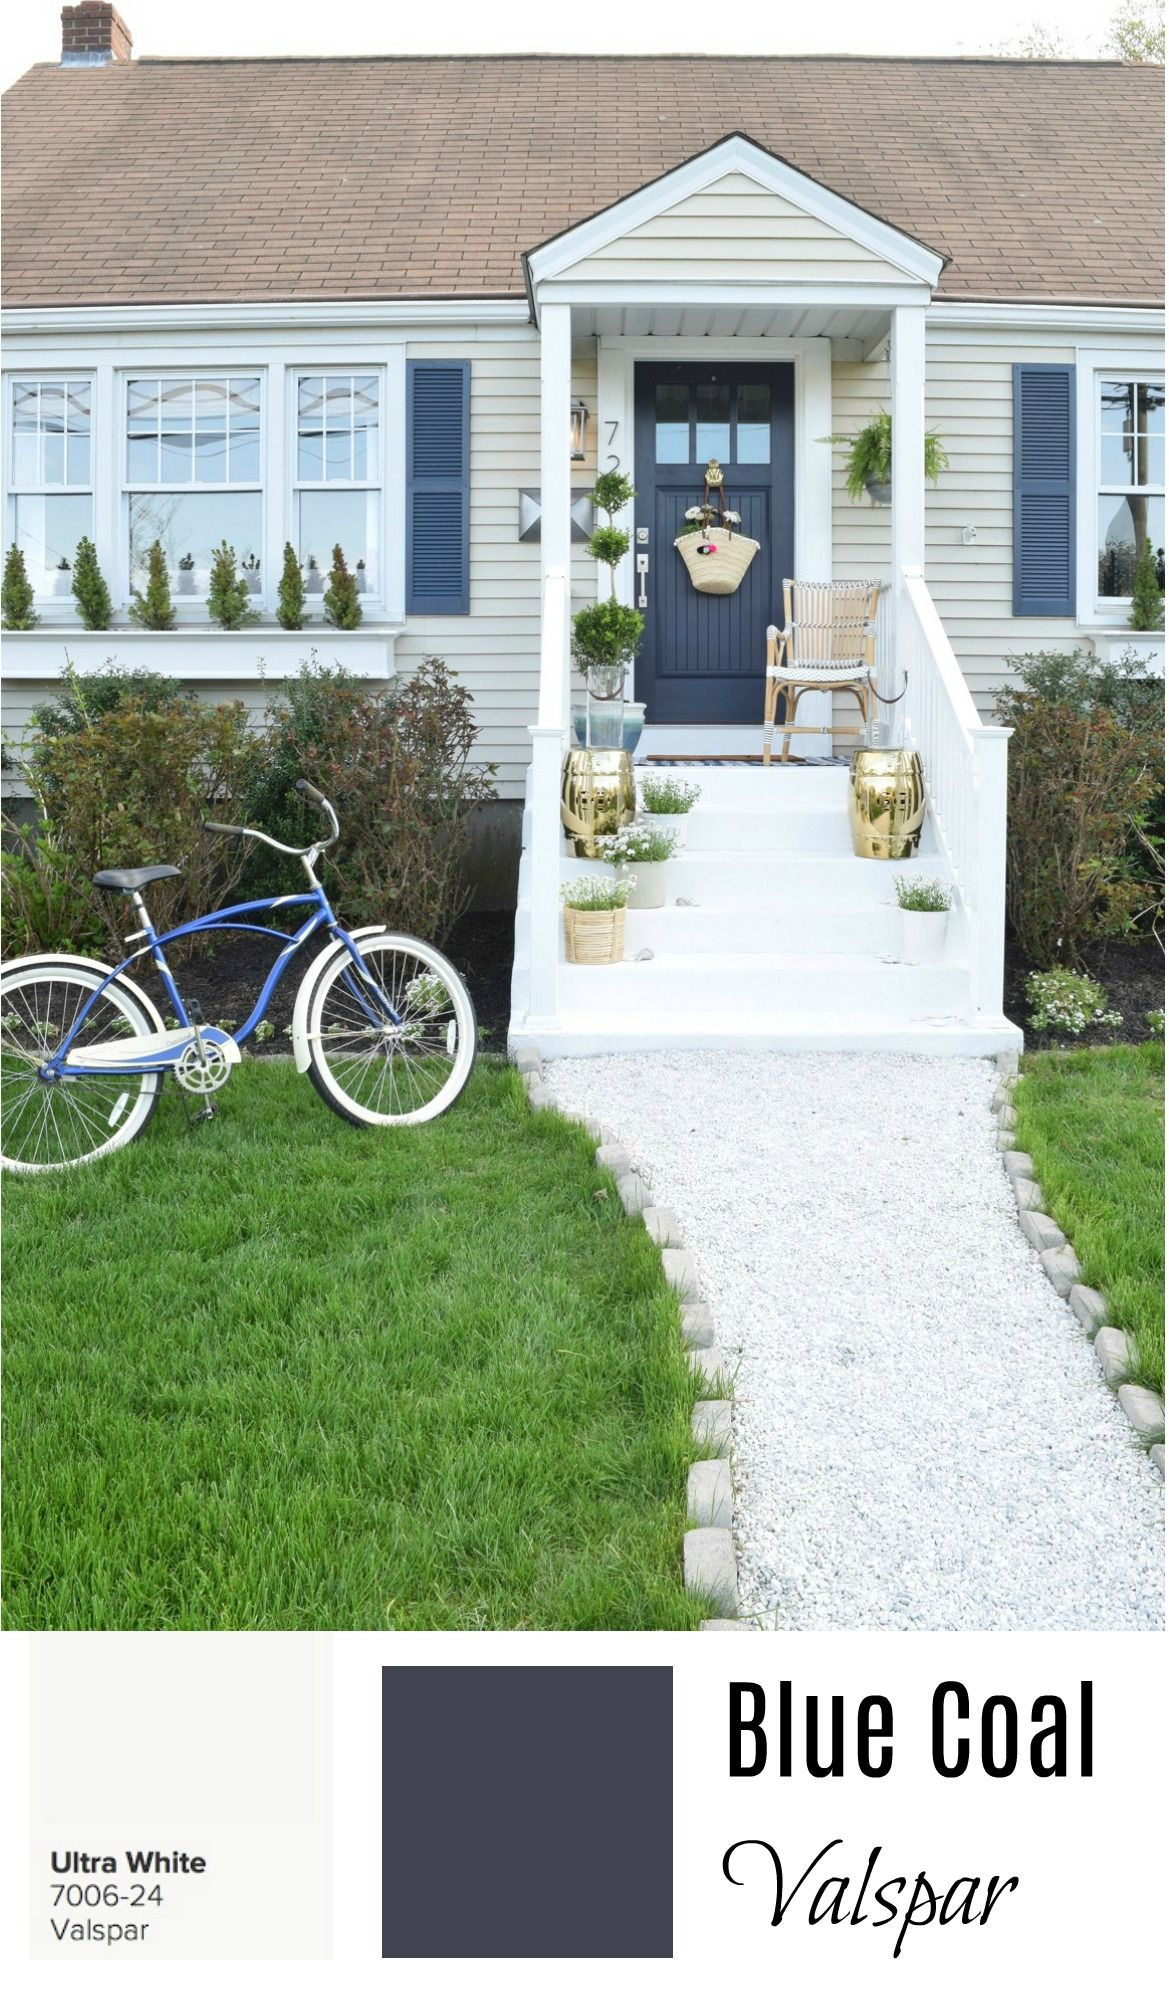 Valspar Blue Coal And Ultra White Exterior Paint Colors